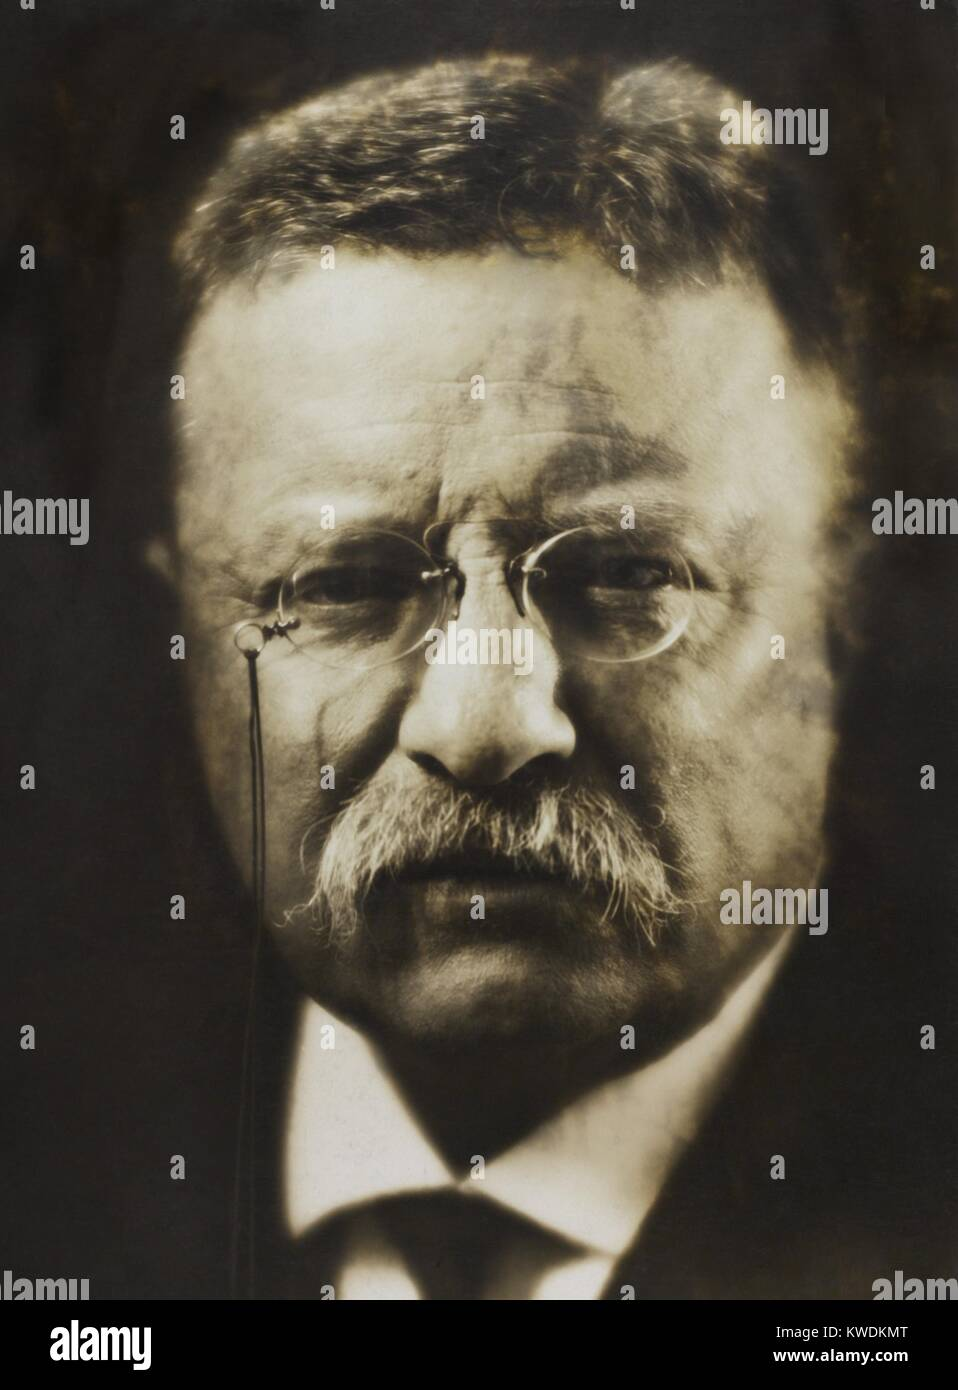 Col. Theodore Roosevelt, April 1917 by noted photographer, Pirie MacDonald. He photographed over 70,000 men during - Stock Image